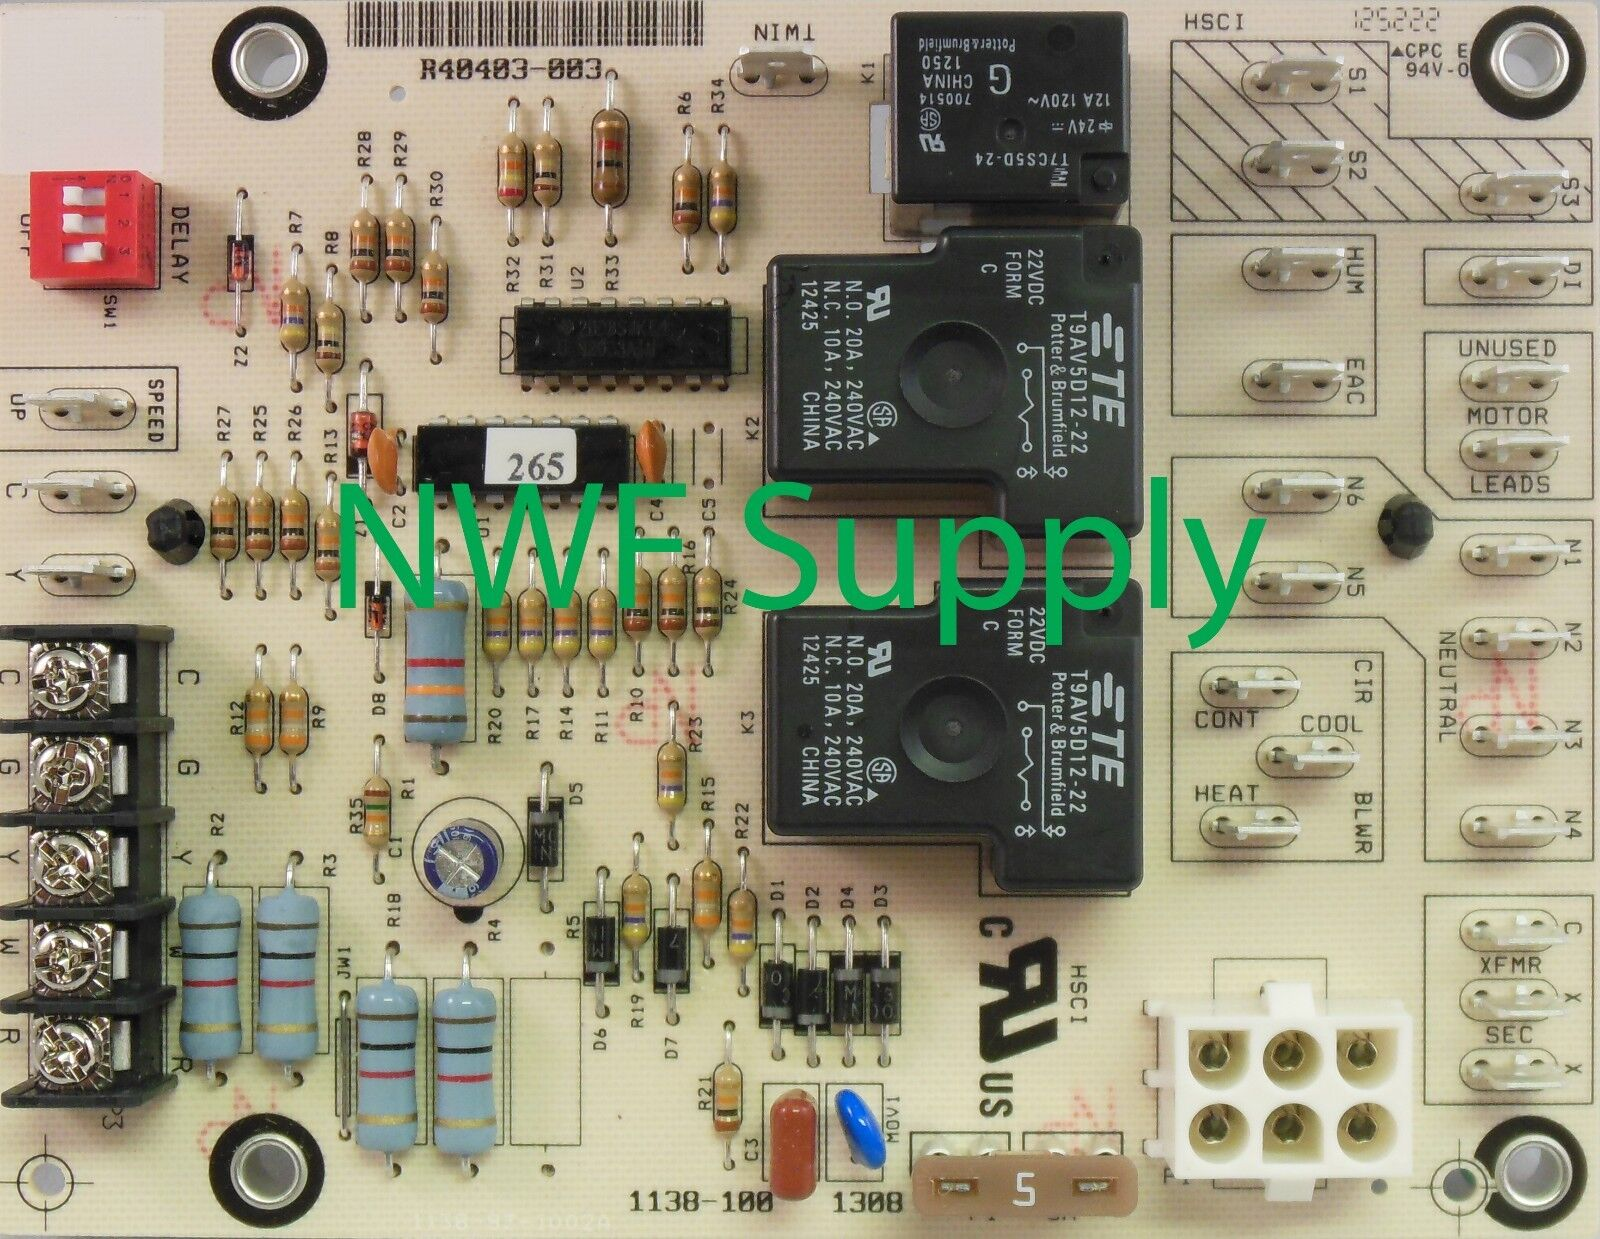 Furnace Control Circuit Board St9120c 4040 Hq1011179hw Honeywell Ebay Main Rheem Ruud Heat Norton Secured Powered By Verisign